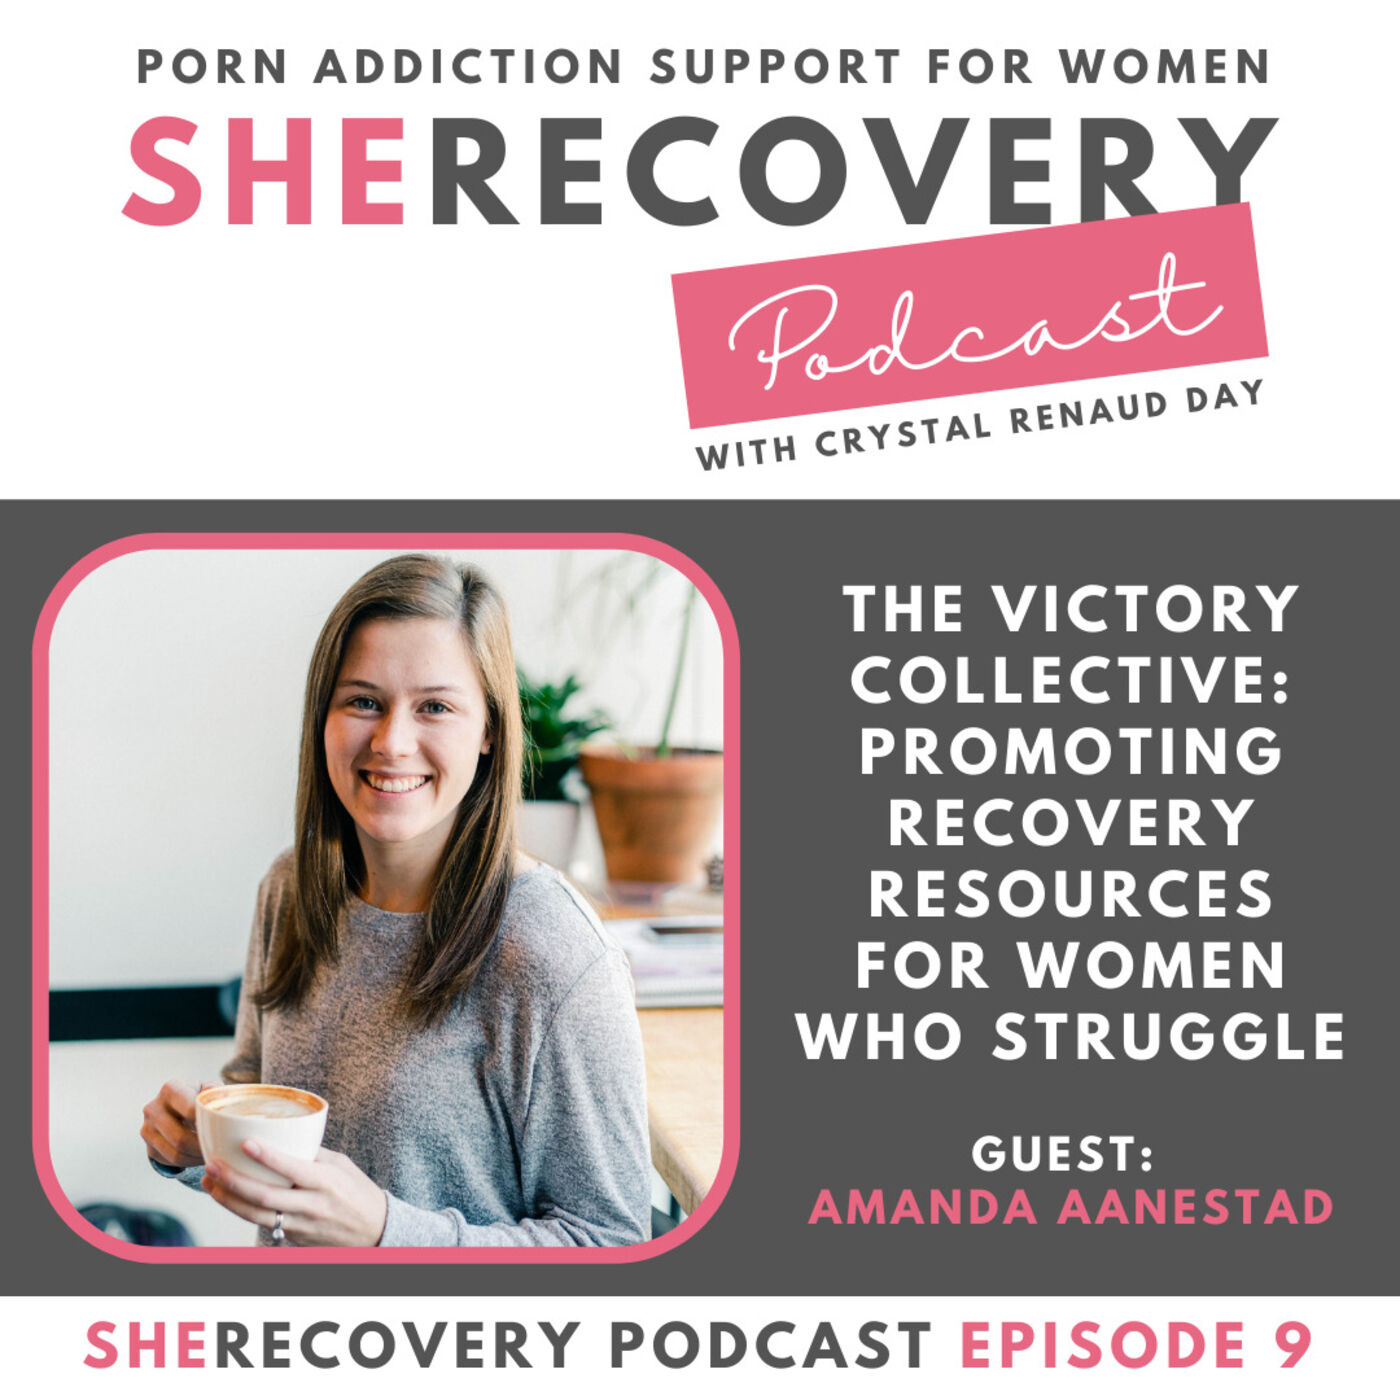 S1 E9: Amanda Aanestad - The Victory Collective: Promoting Recovery Resources for Women Who Struggle